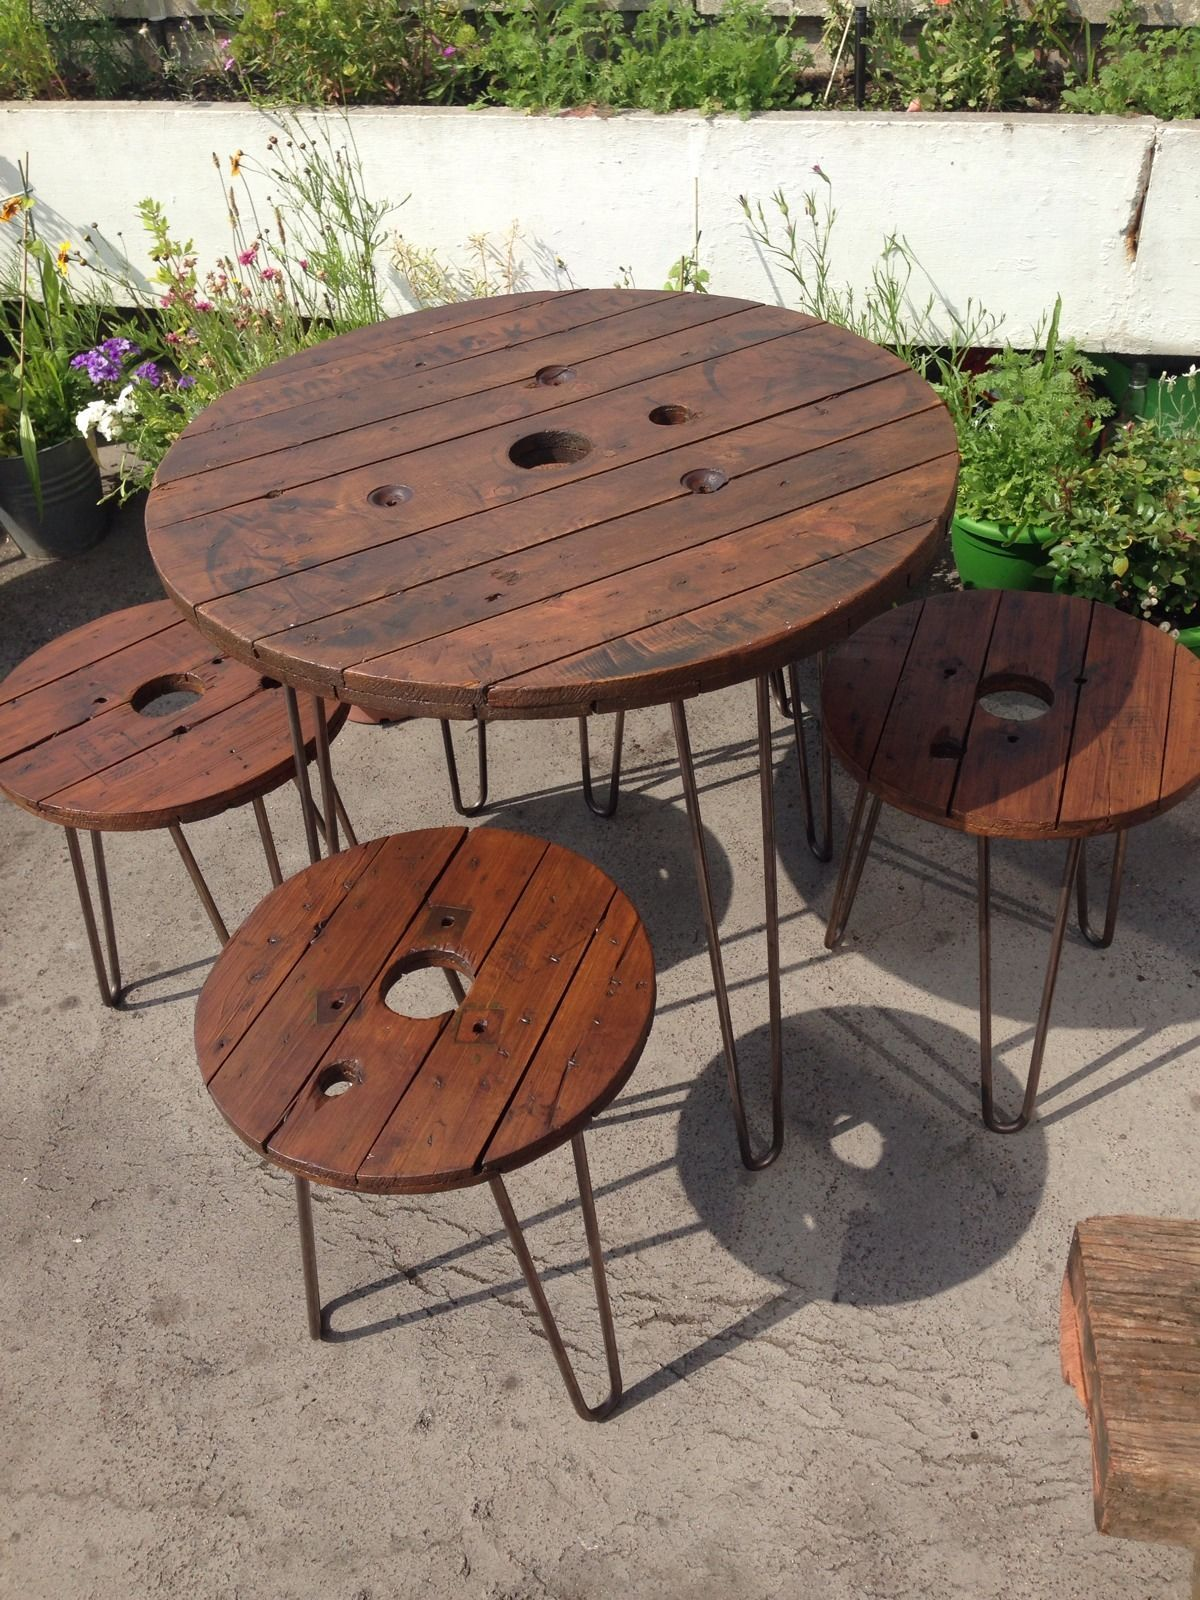 Garden Table And Chairs Wooden Garden Furniture Set Table And Stools Upcycled